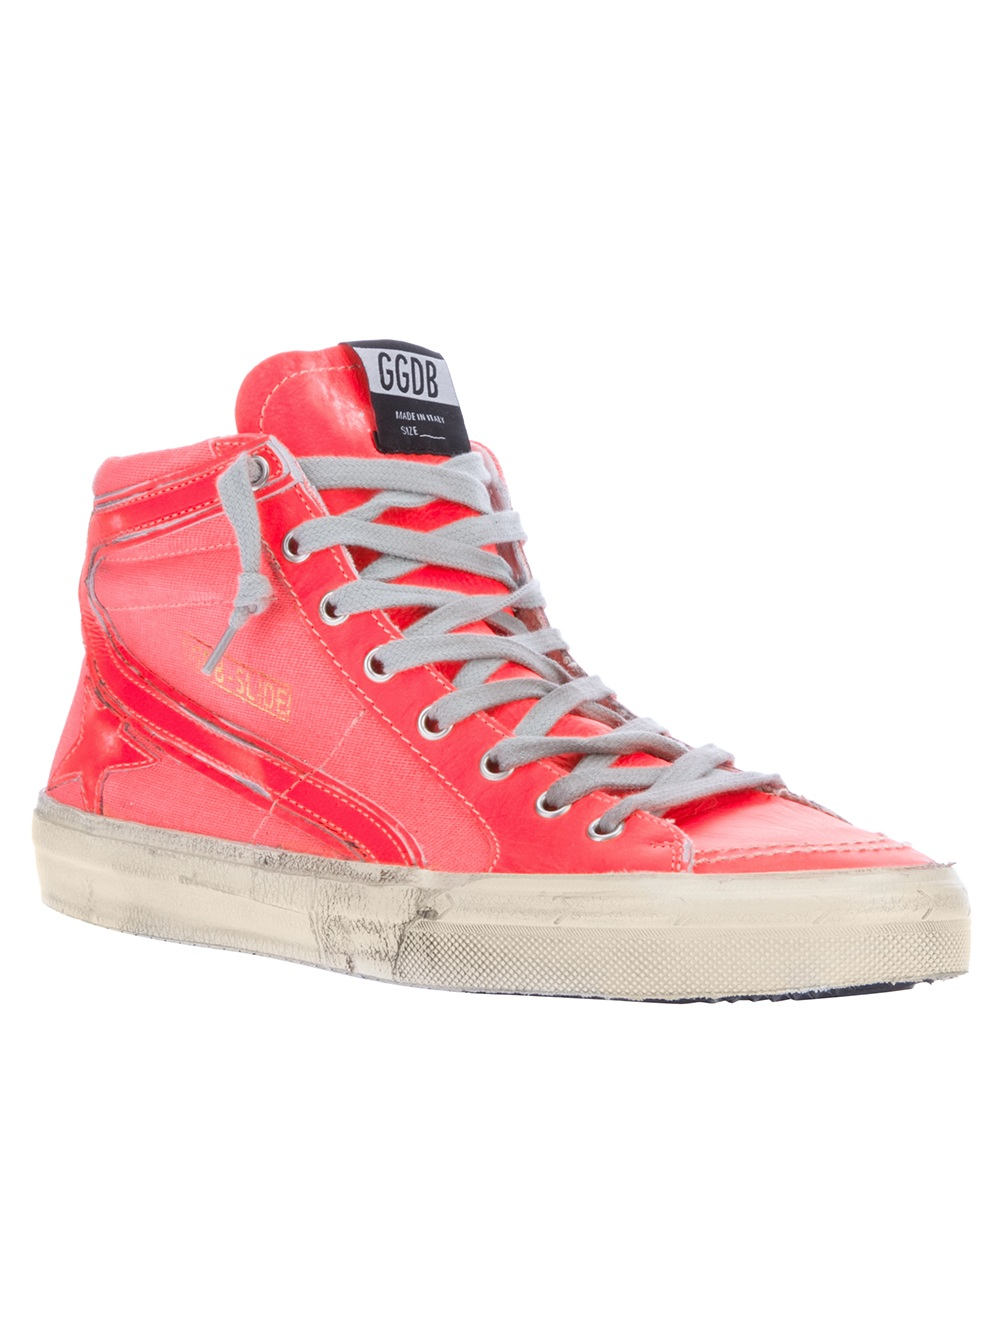 golden goose deluxe brand slide hi top trainer in pink for men lyst. Black Bedroom Furniture Sets. Home Design Ideas